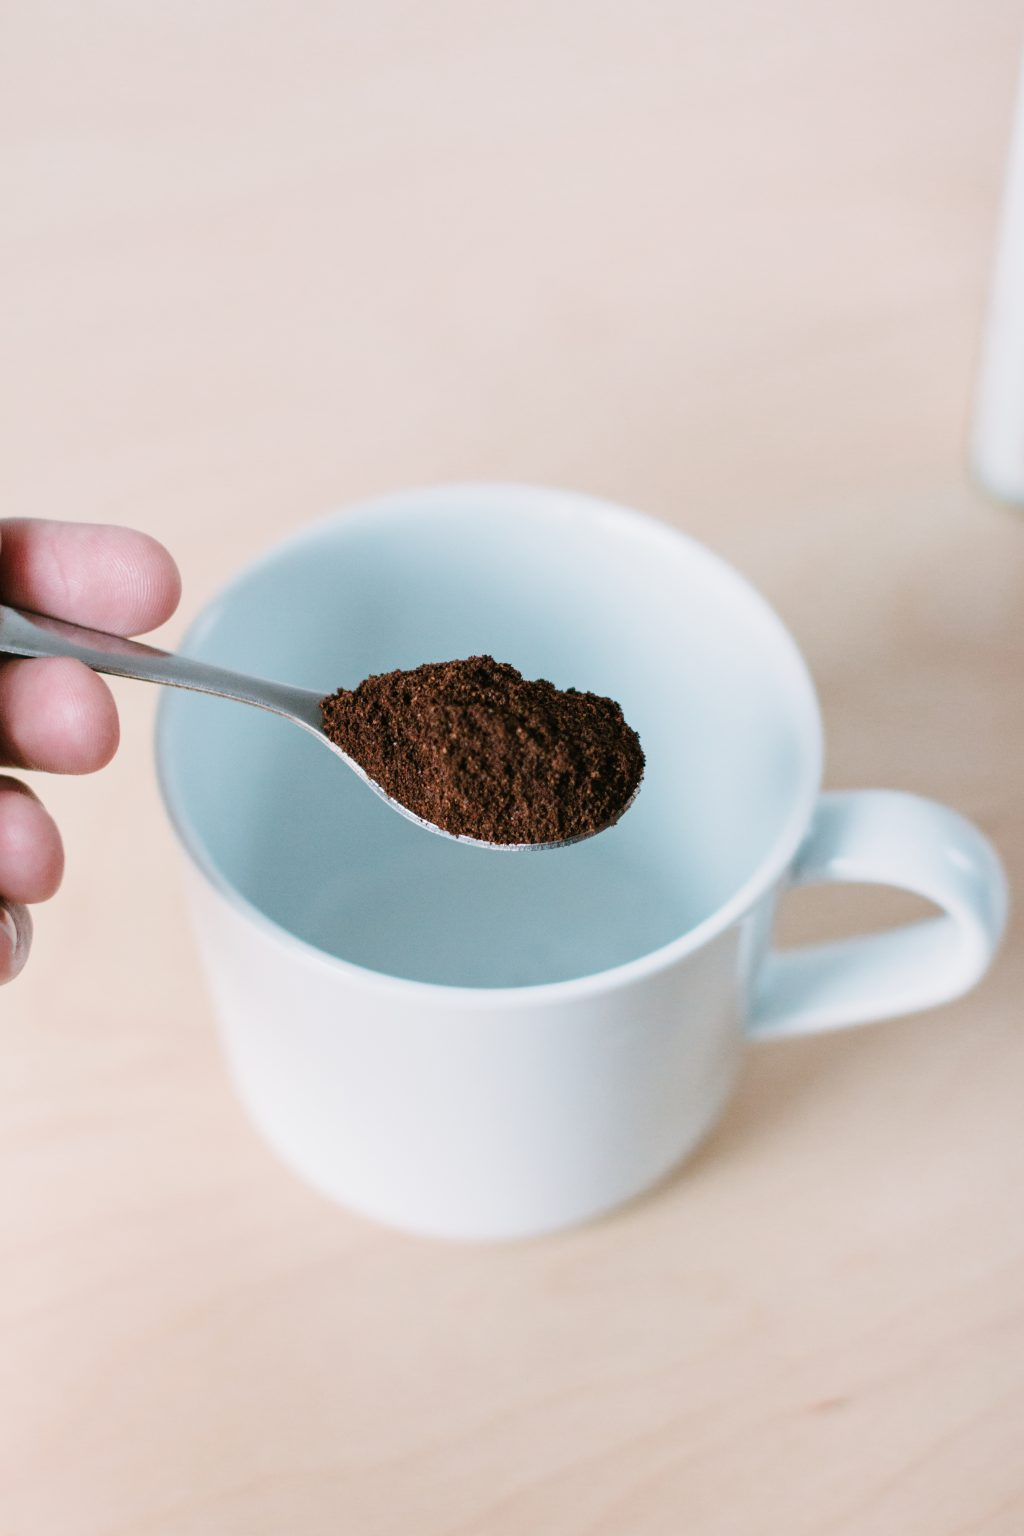 Ground coffee in a spoon 2 - free stock photo